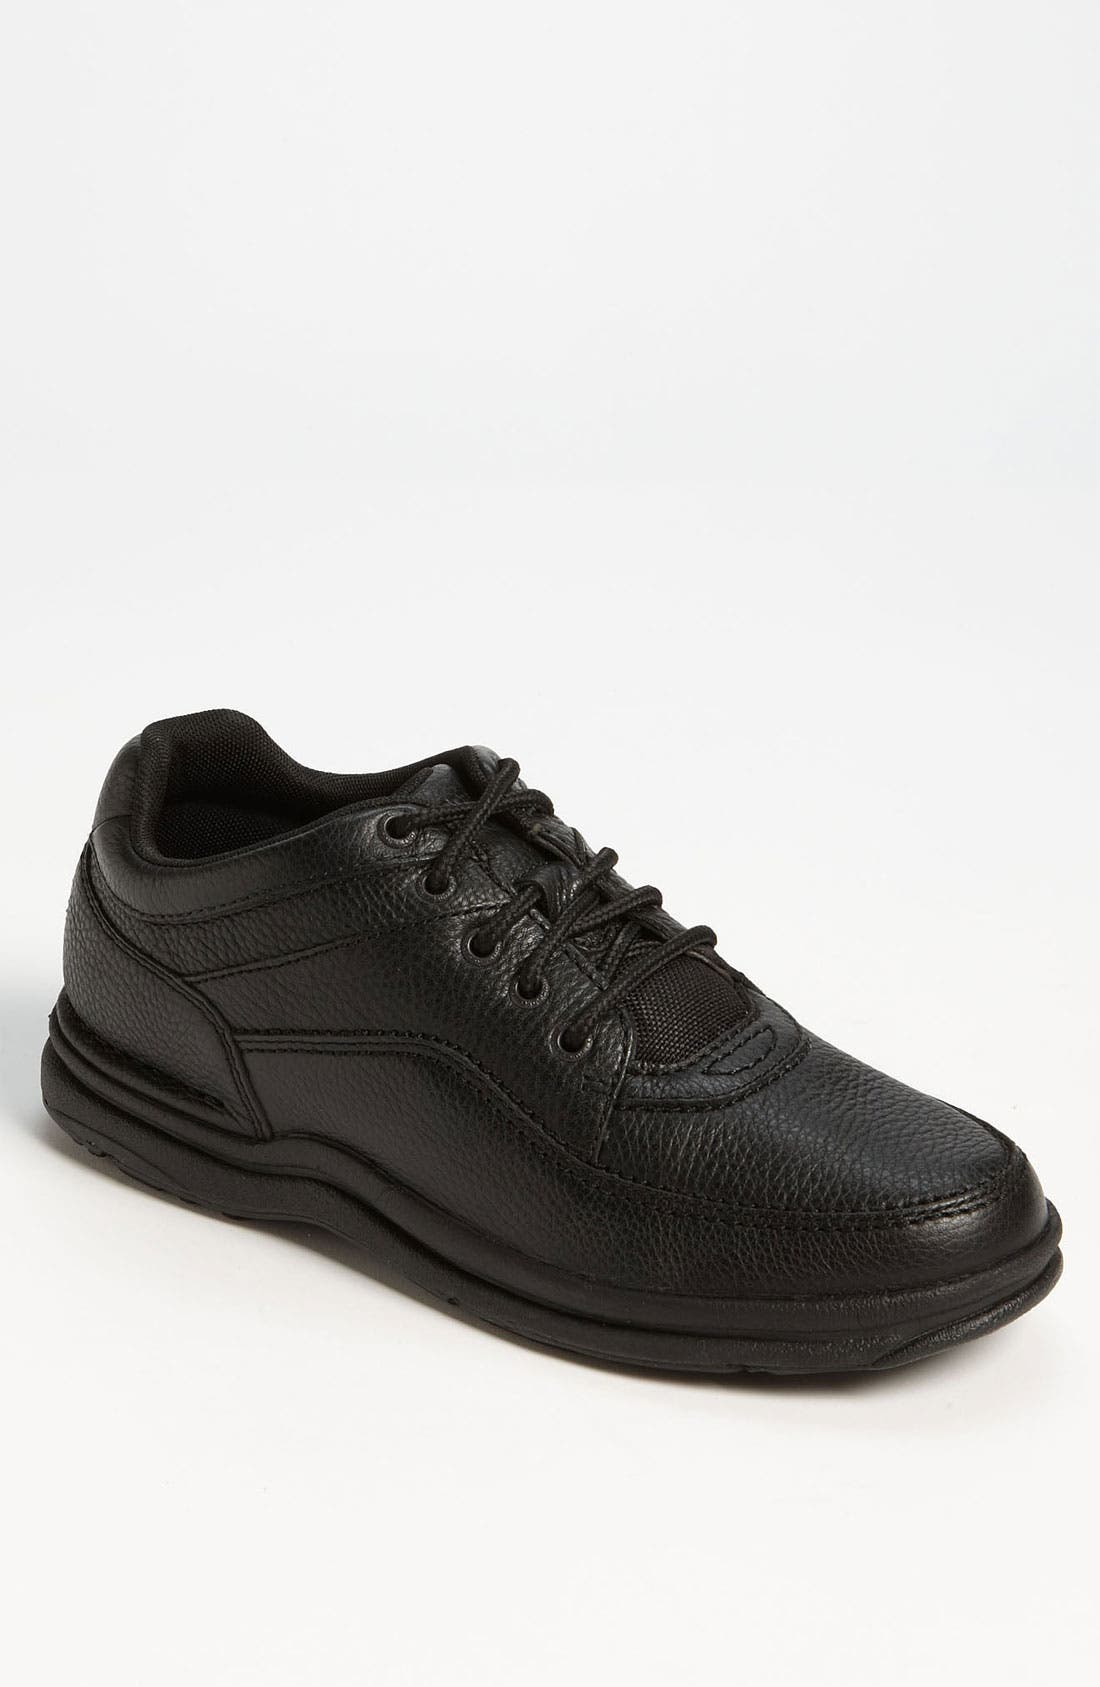 ROCKPORT 'World Tour Classic' Oxford, Main, color, BLACK/ BLACK